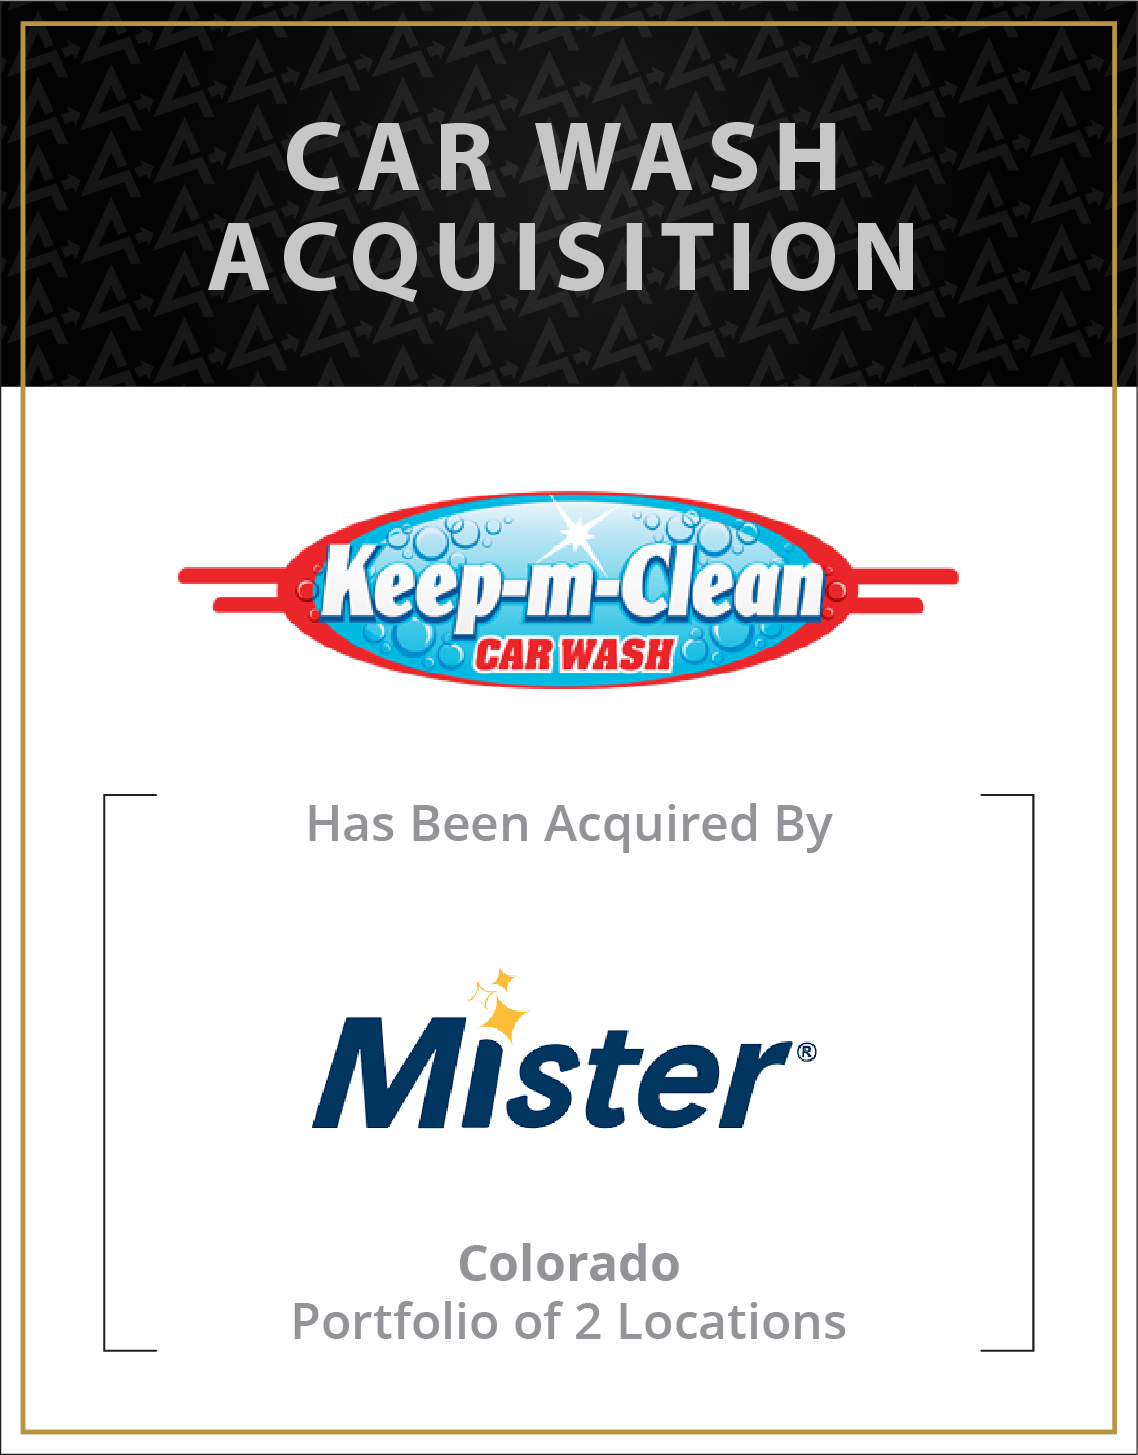 Keep M Clean Car Wash has been acquired by Mister Car Wash